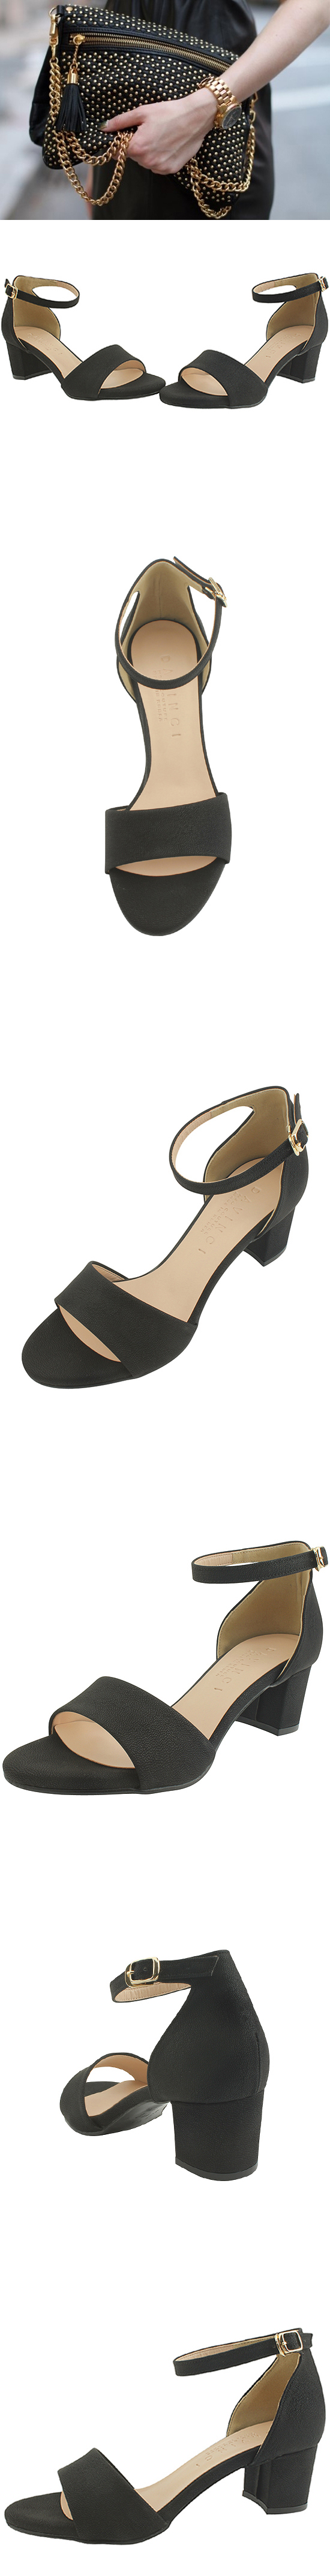 Ankle Strap Sandals Nubuck Black